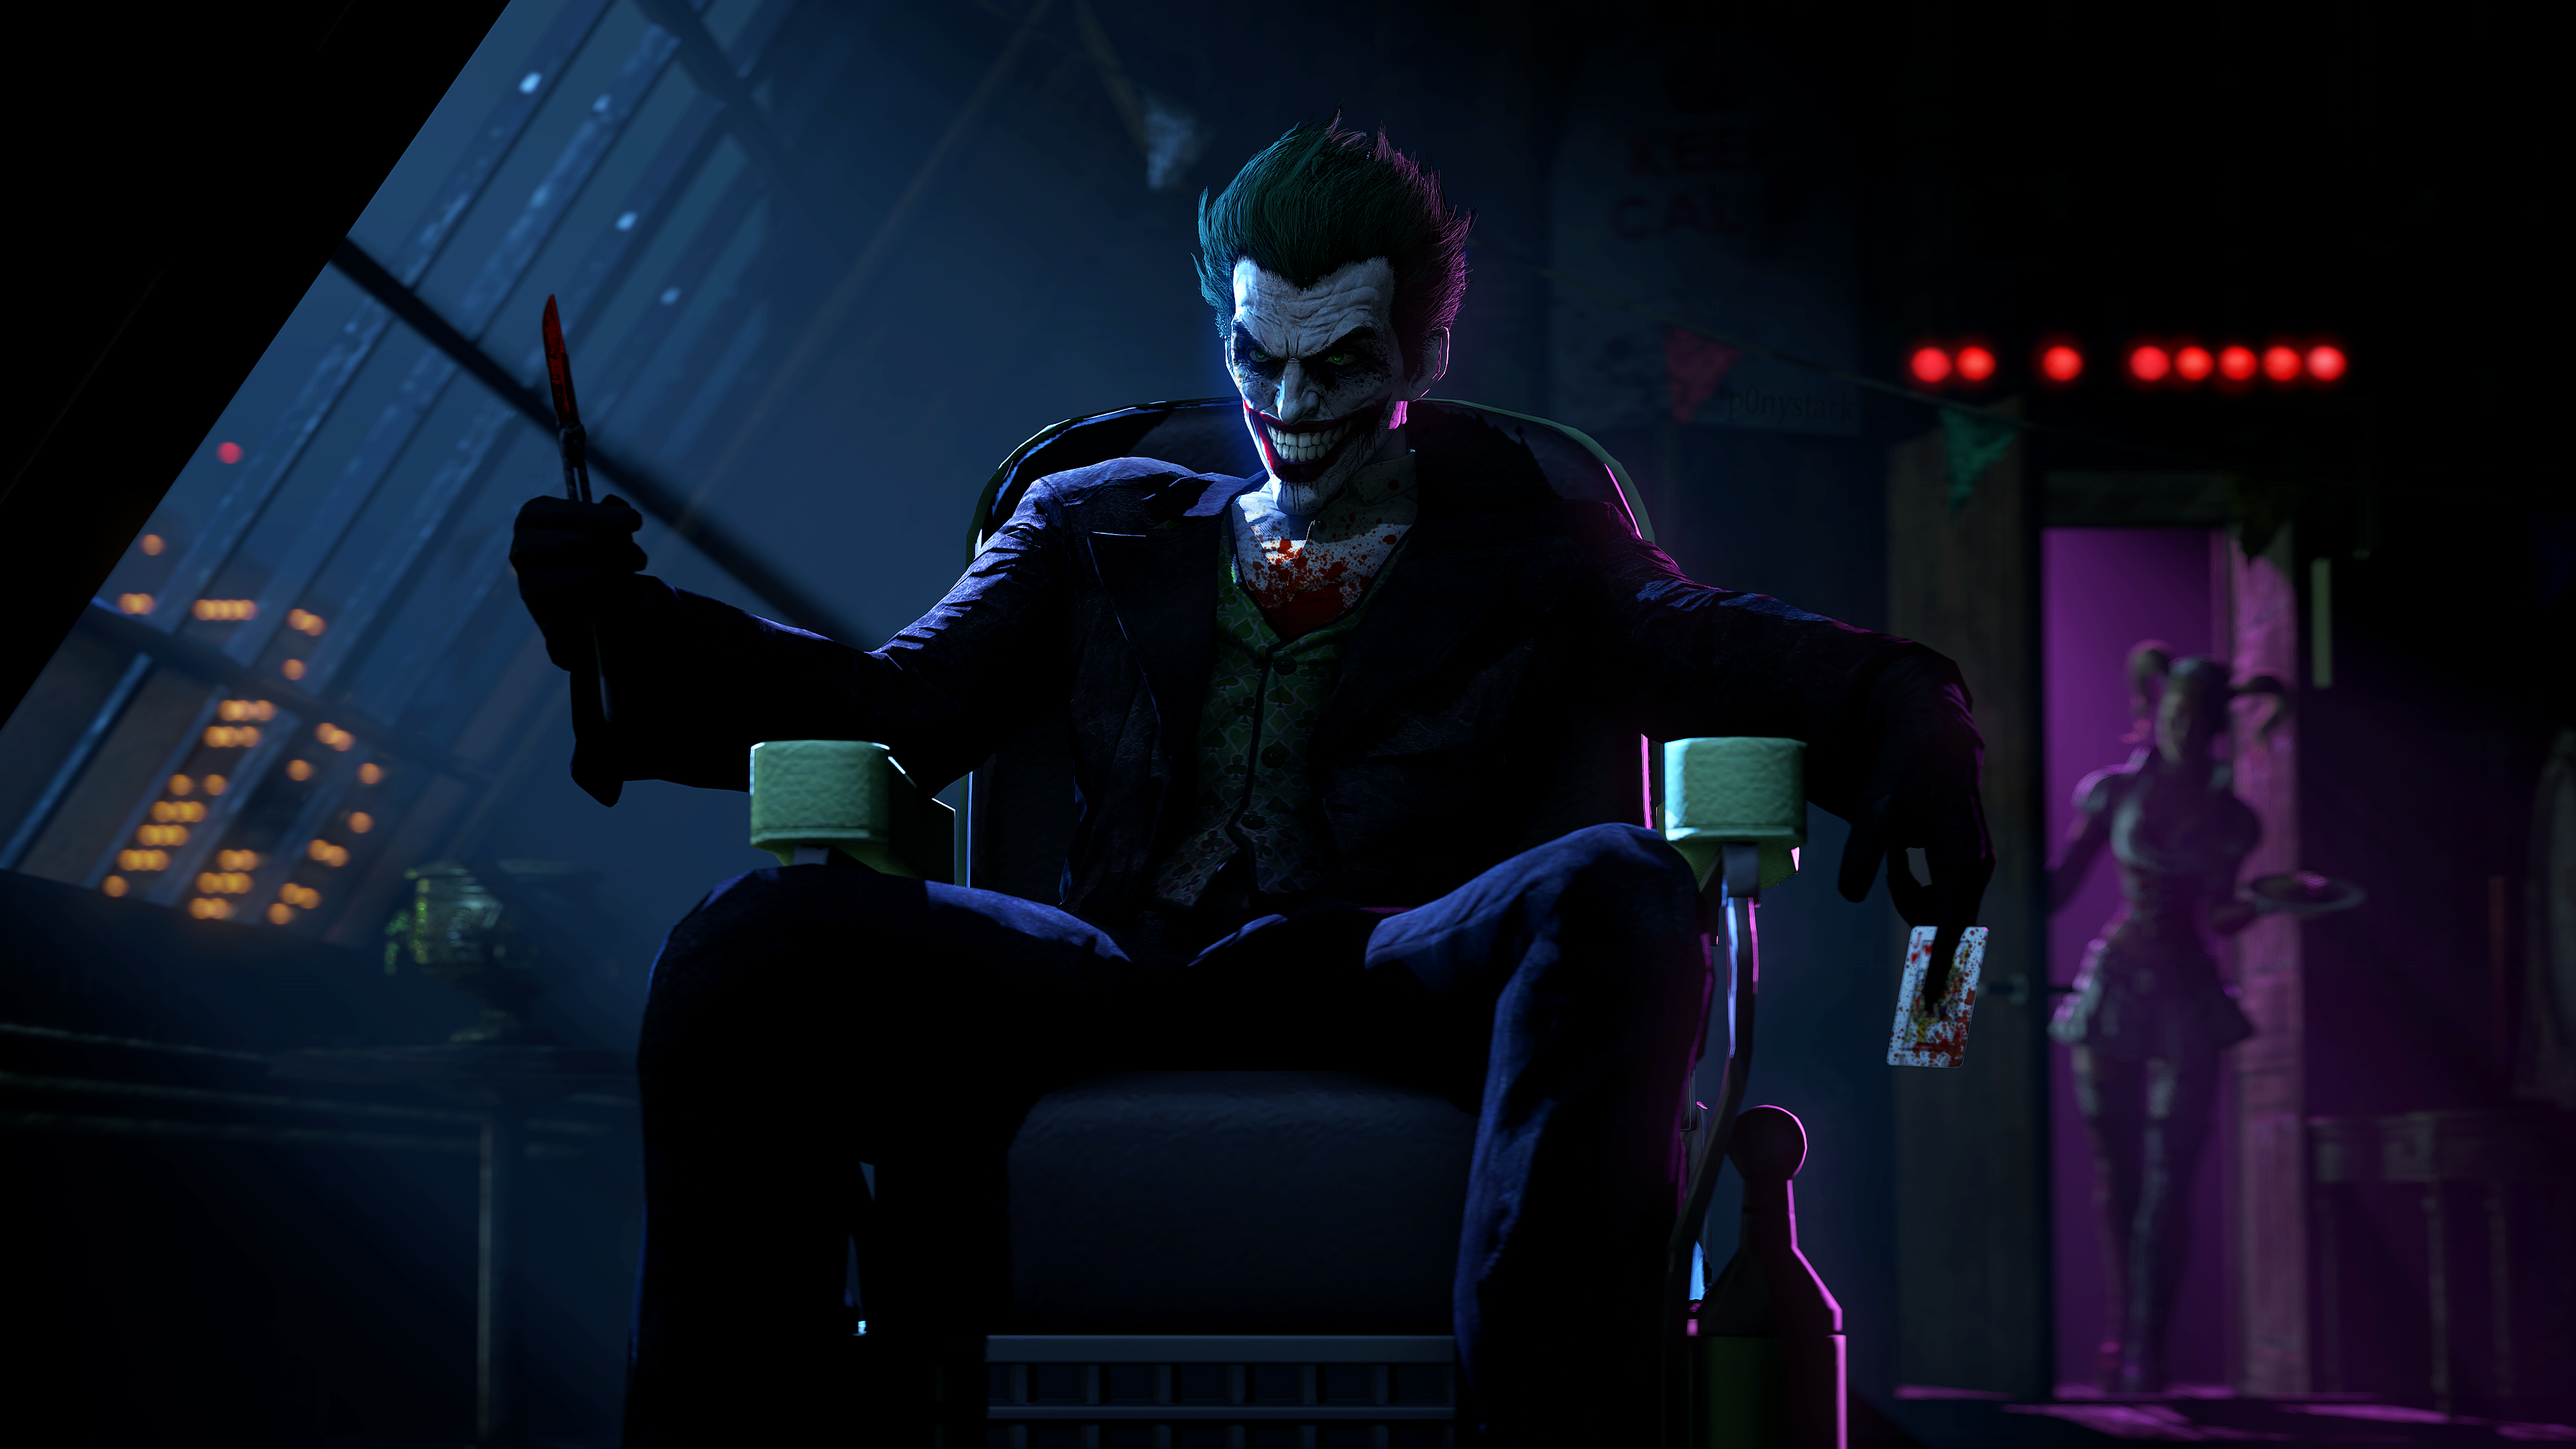 batman arkham origins joker wallpaper 1080p